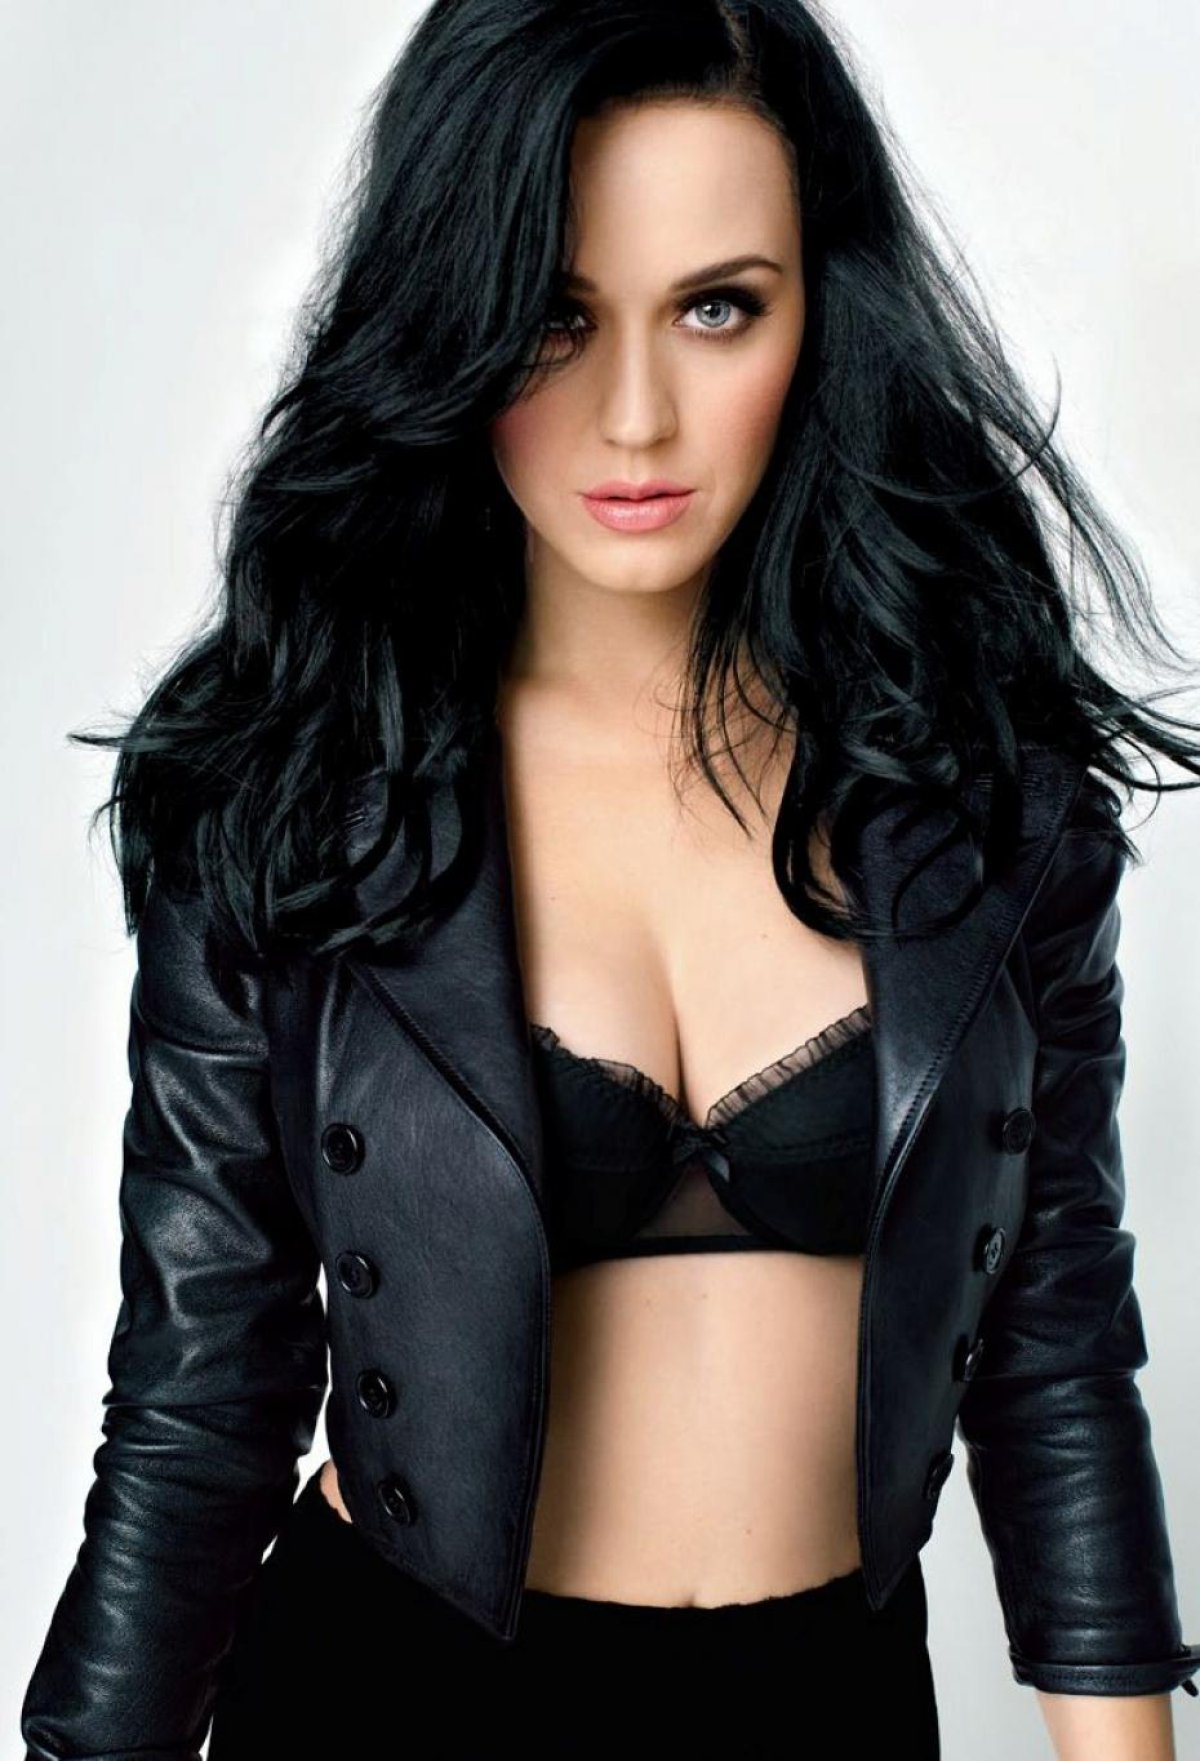 katy perry model pretty hot hair sexy fashion brunette adult lady portrait